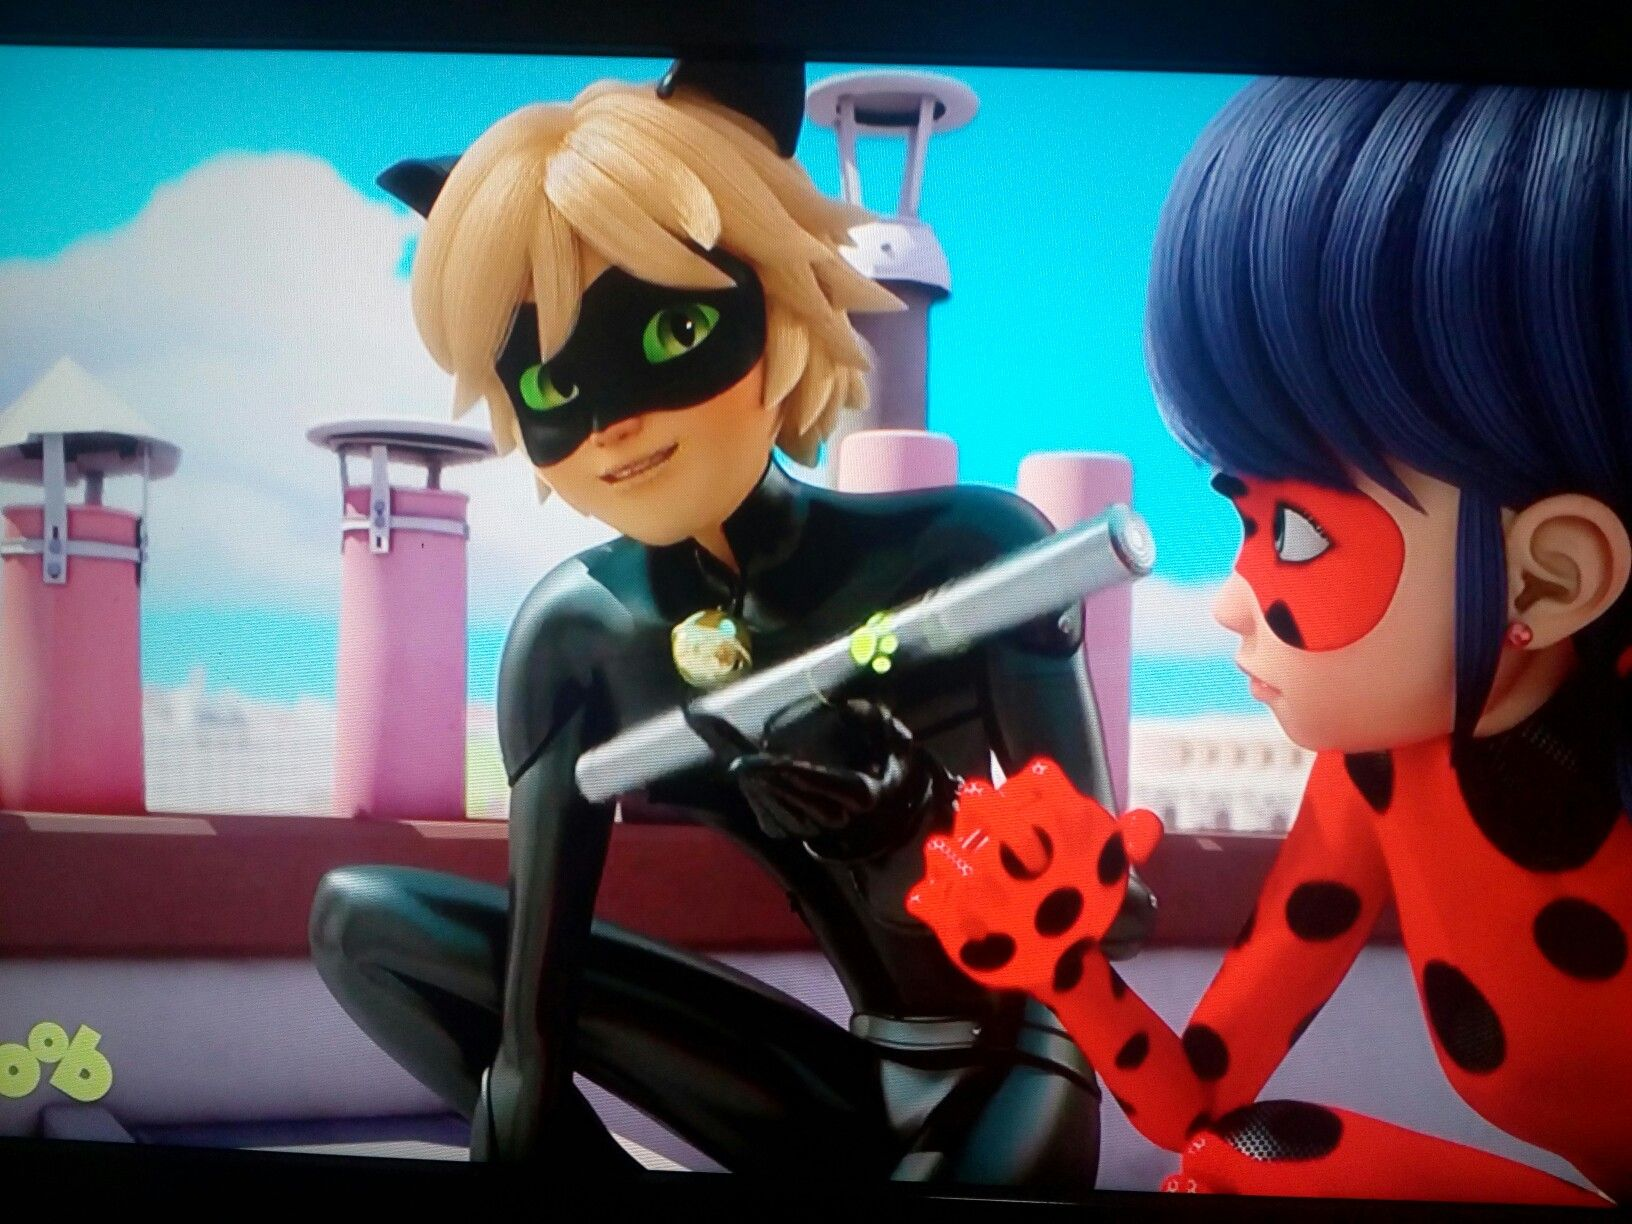 Pin By Smiley On Miraculous Ladybug Miraculous Ladybug Ladybug Miraculous